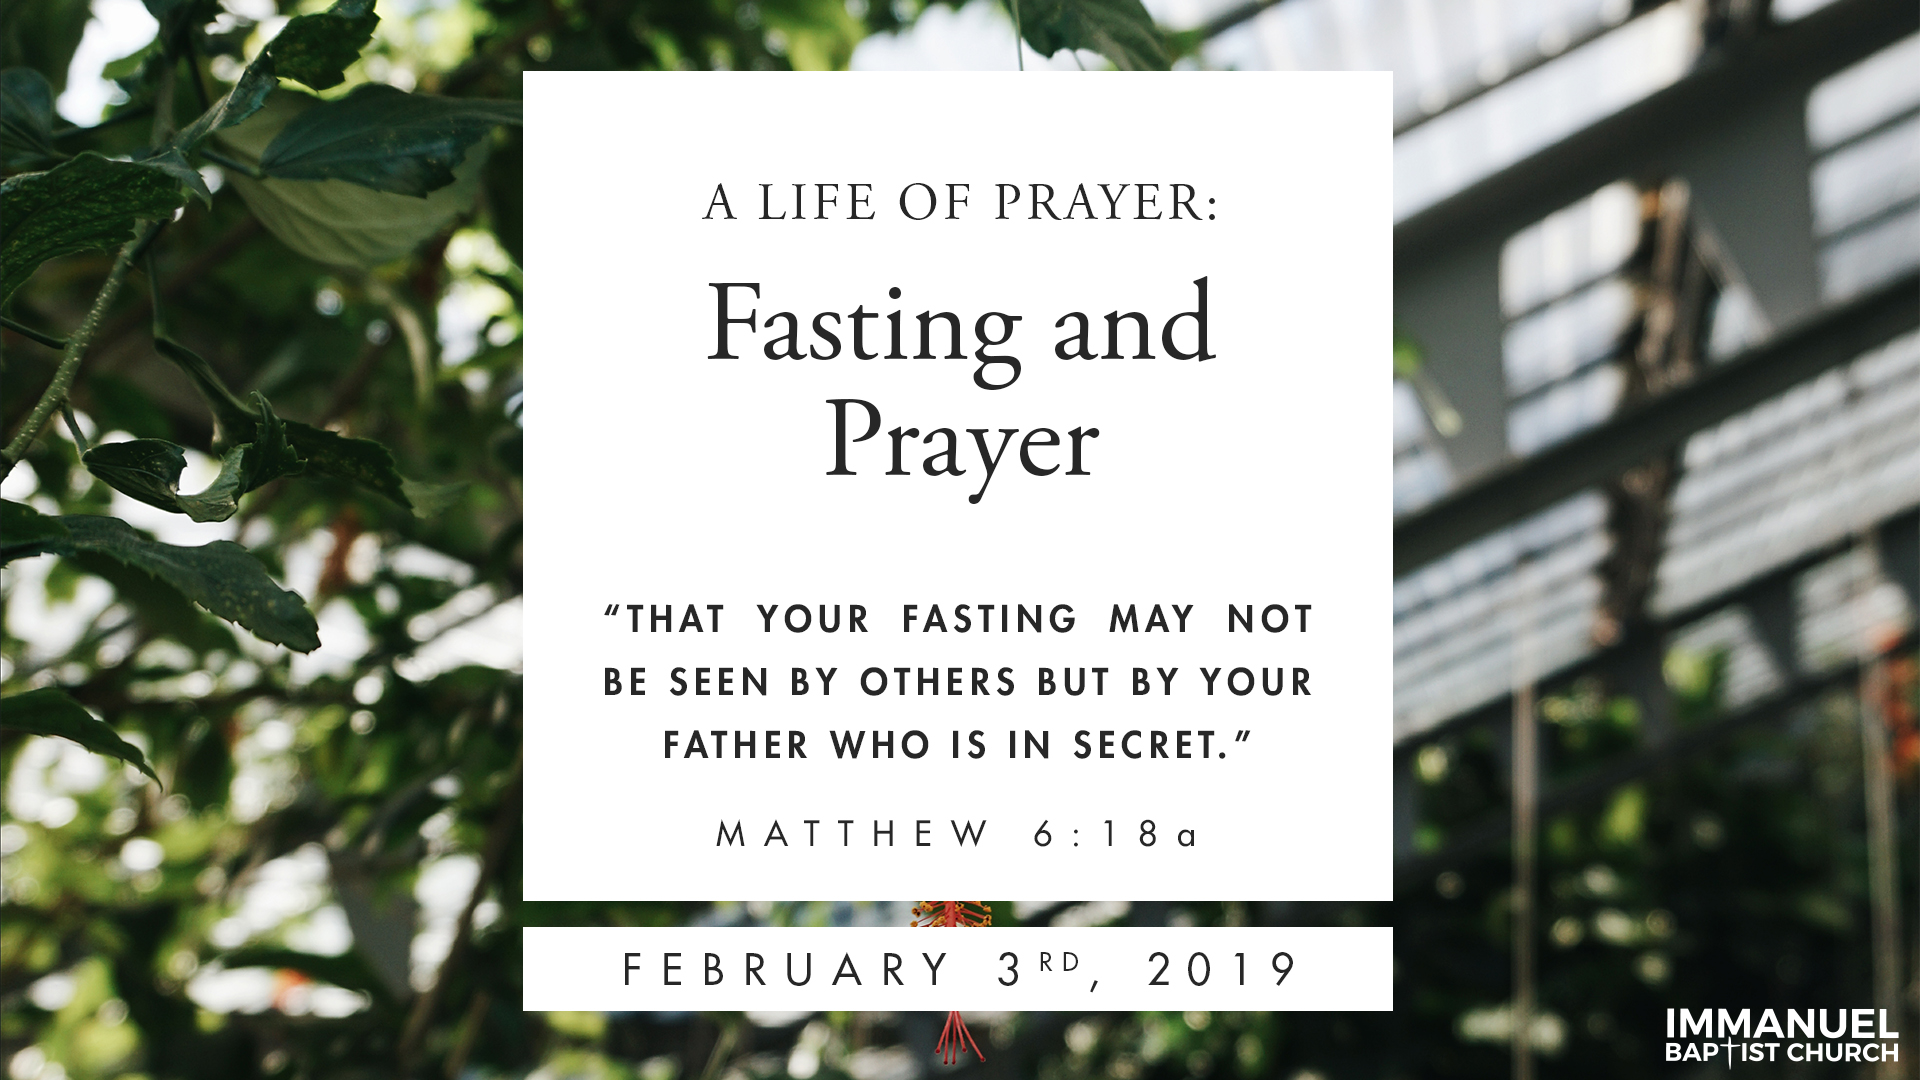 Fasting and Praying Image